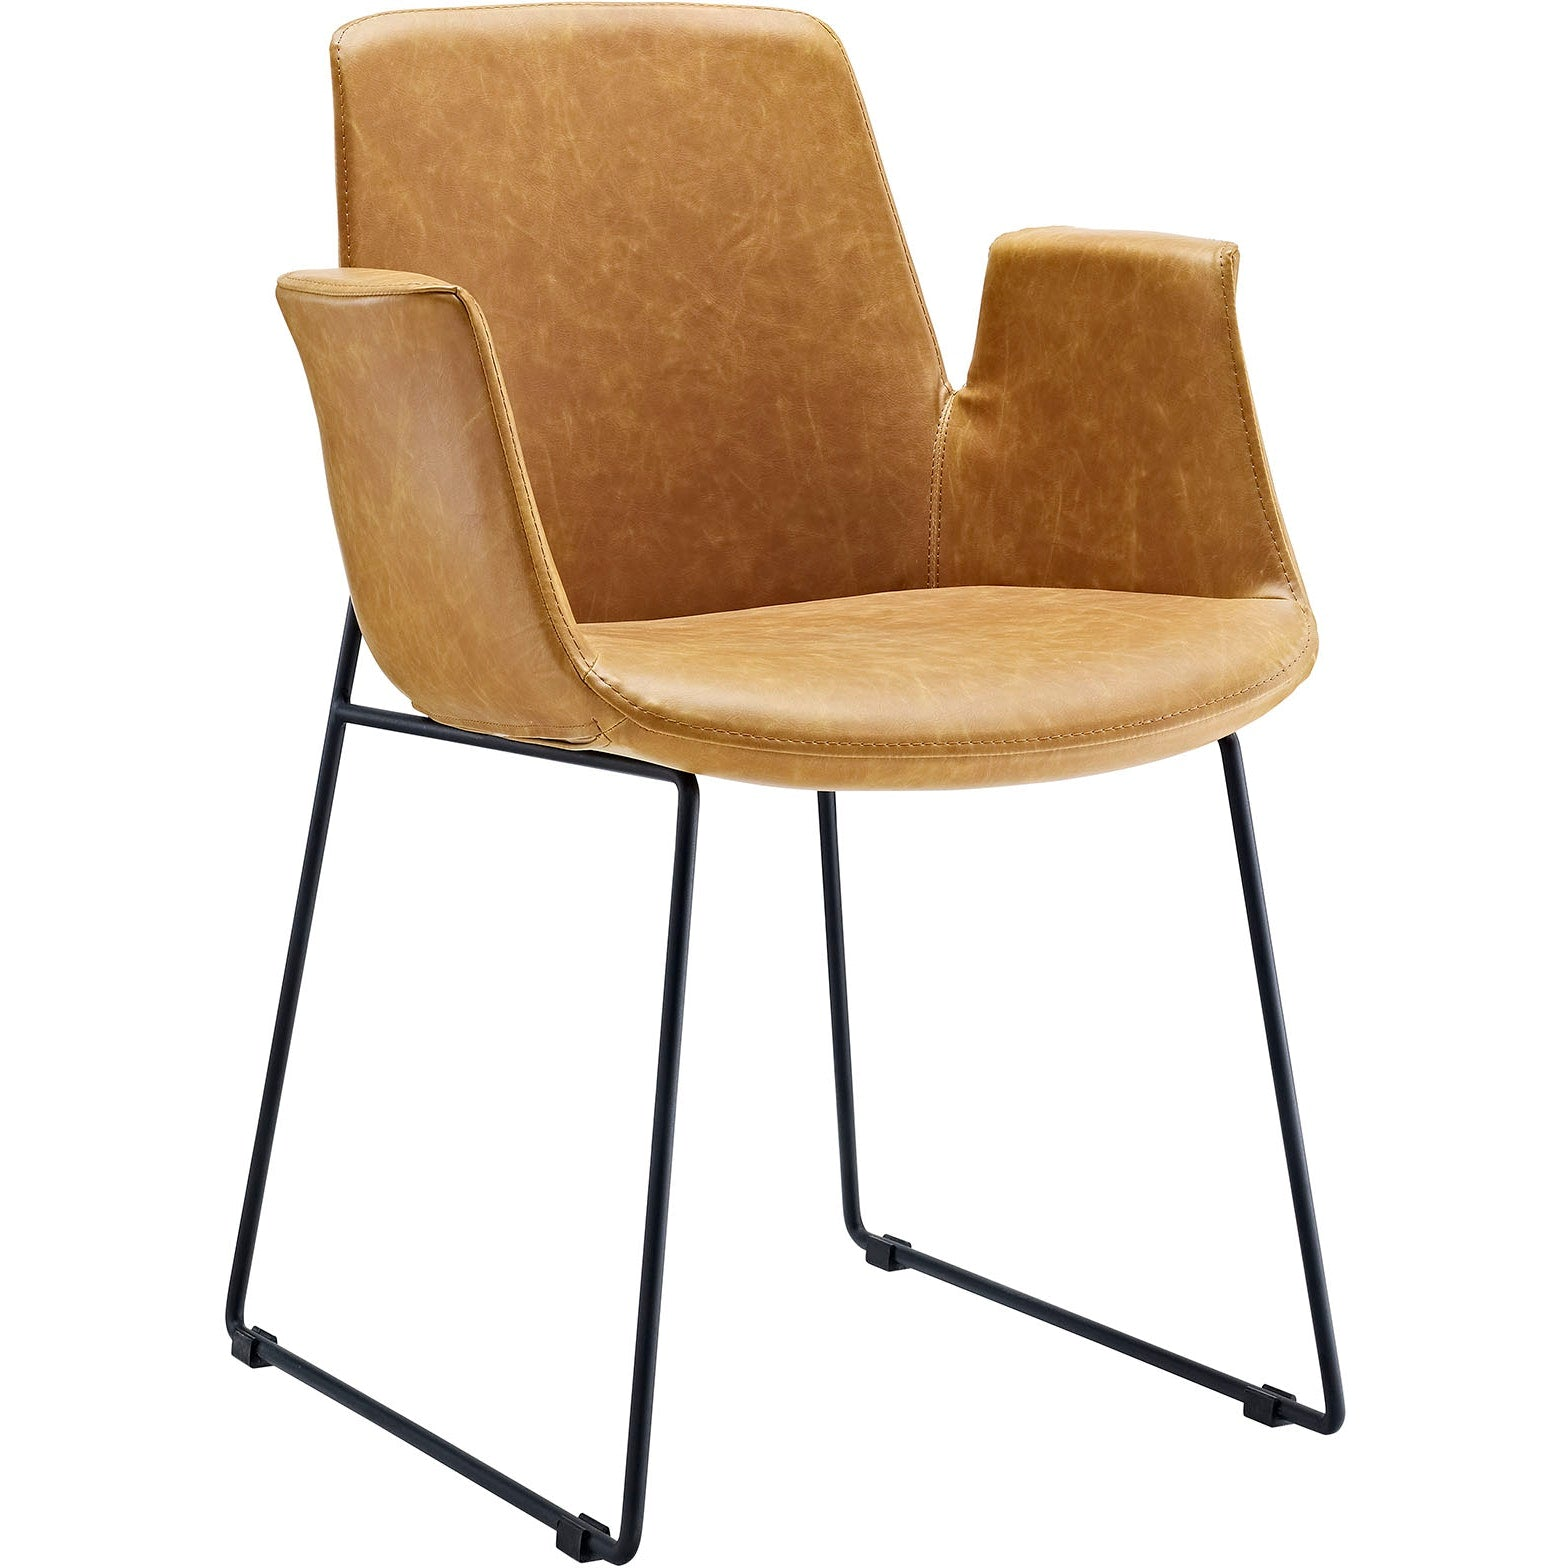 Aloft Dining Armchair - Tan